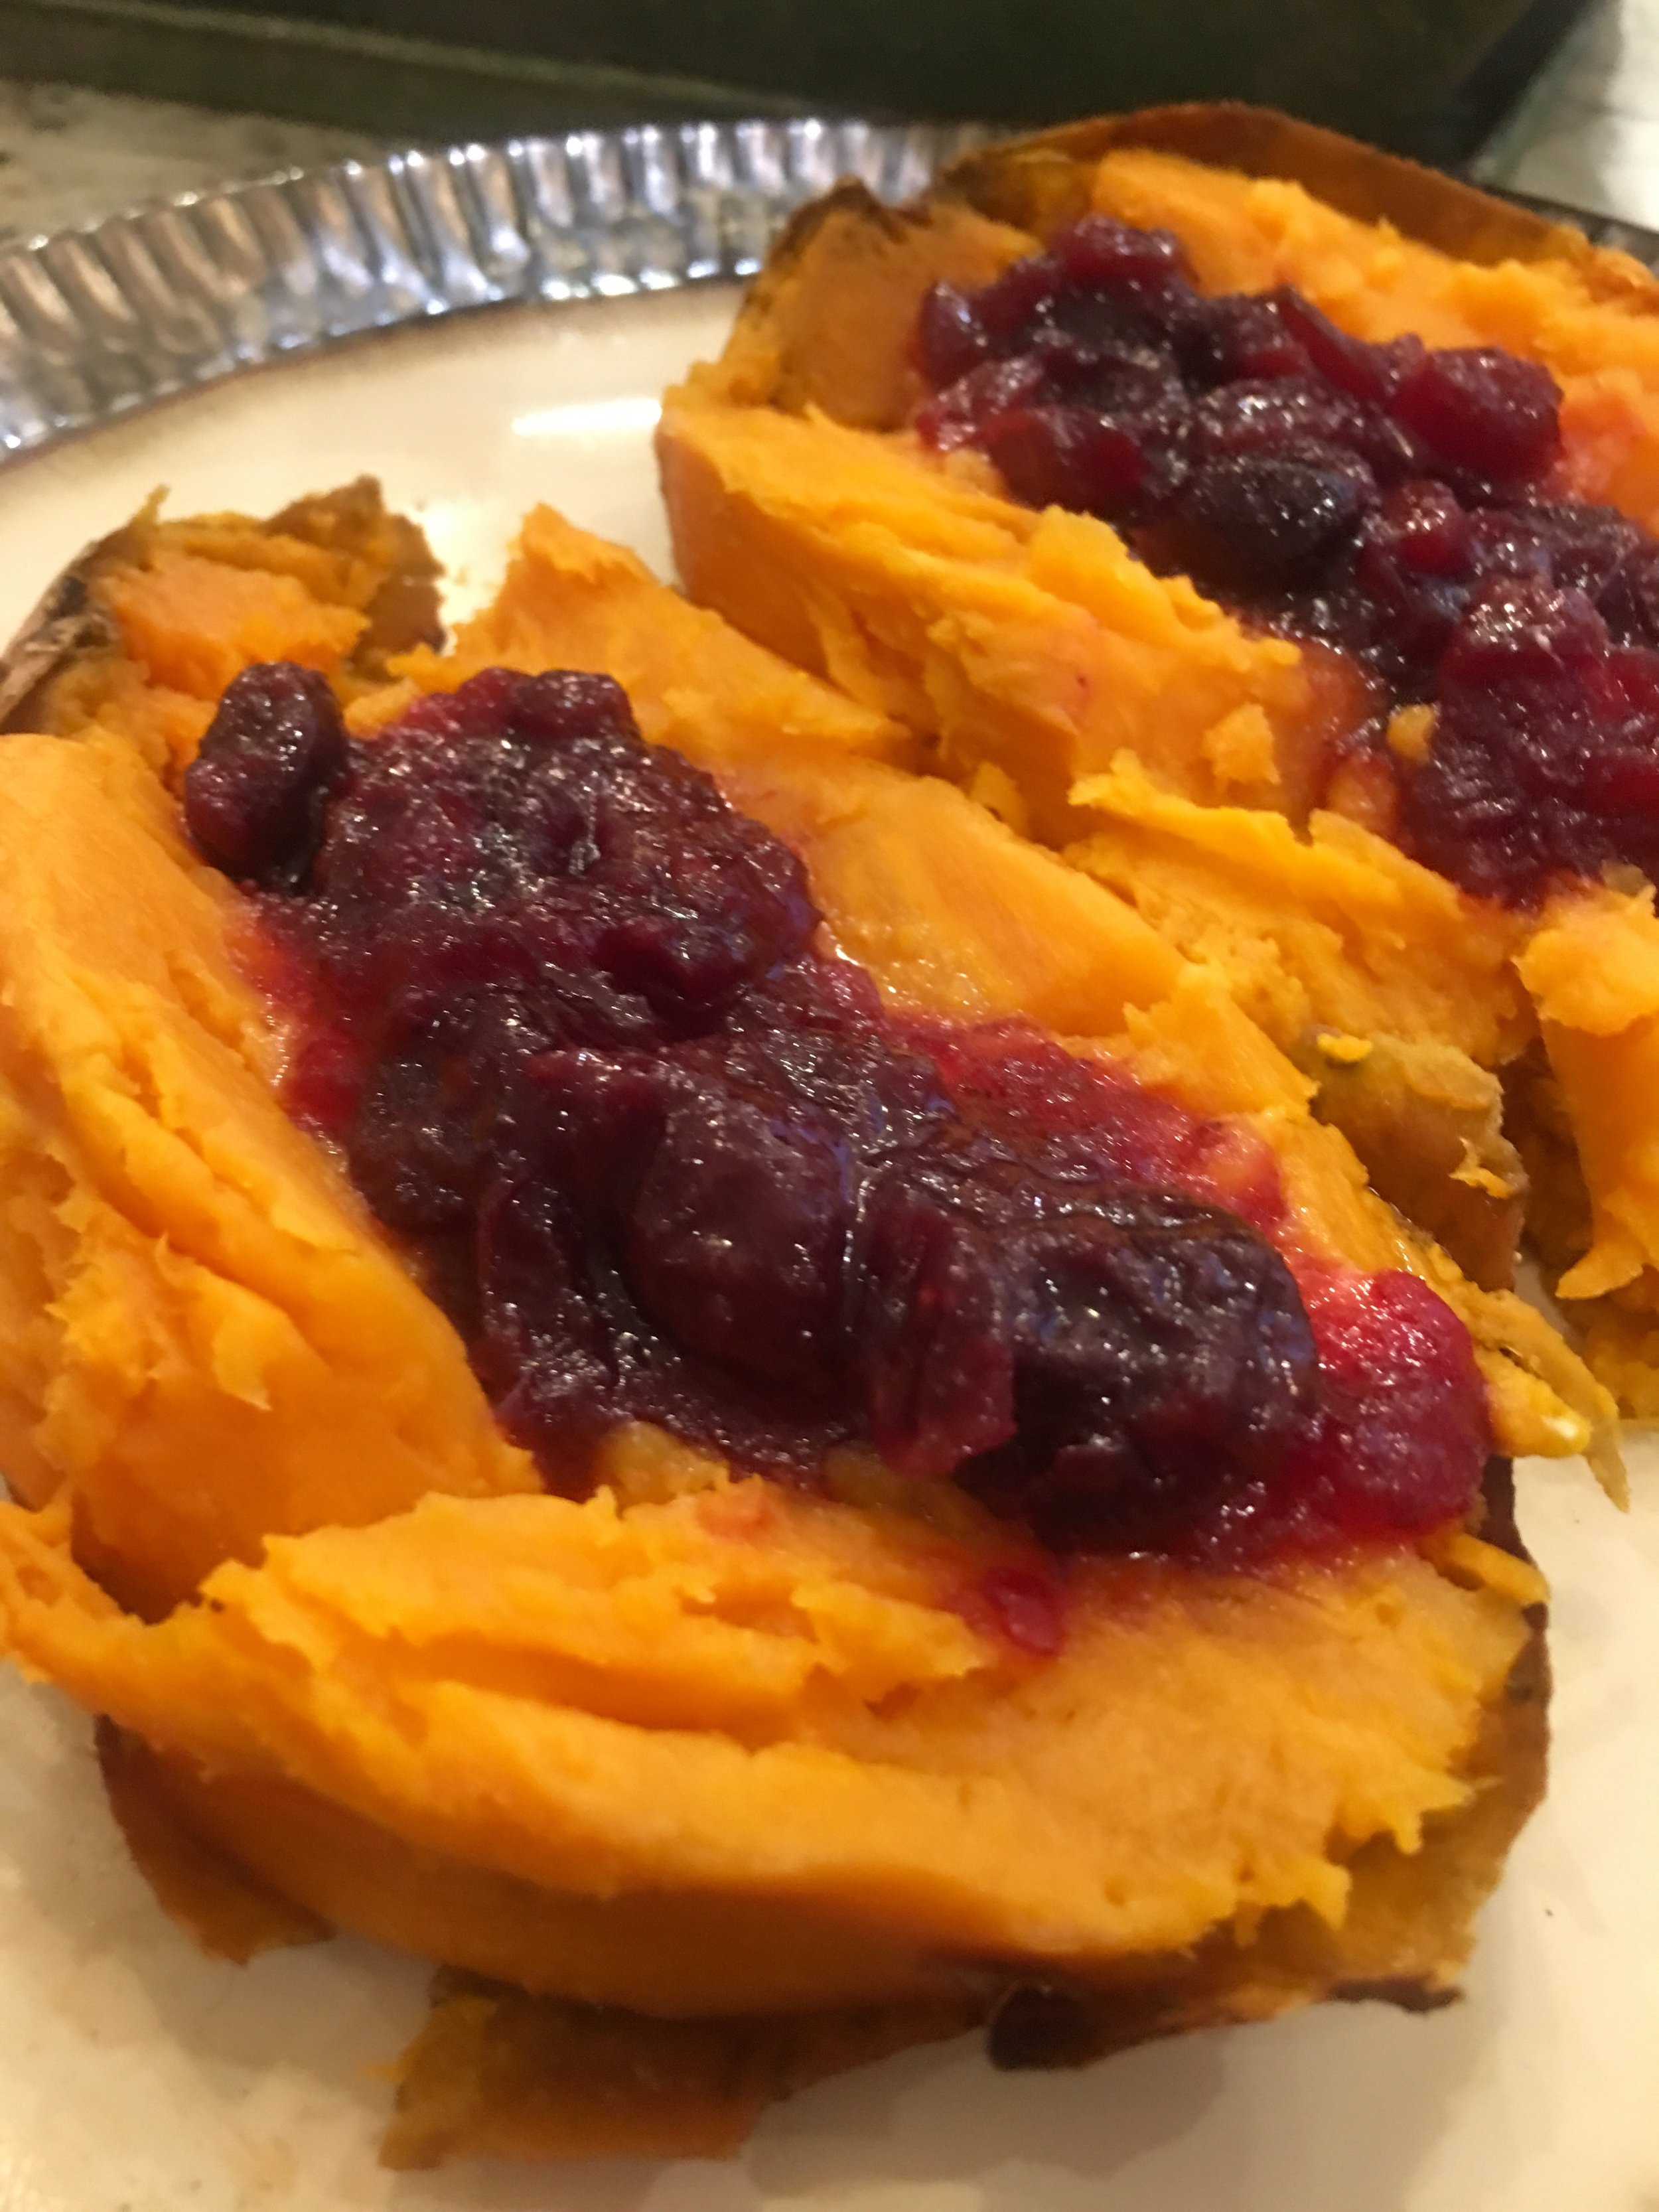 Cherry Orange Cranberry Sauce on Sweet potatoes is a spectacular flavor combination.